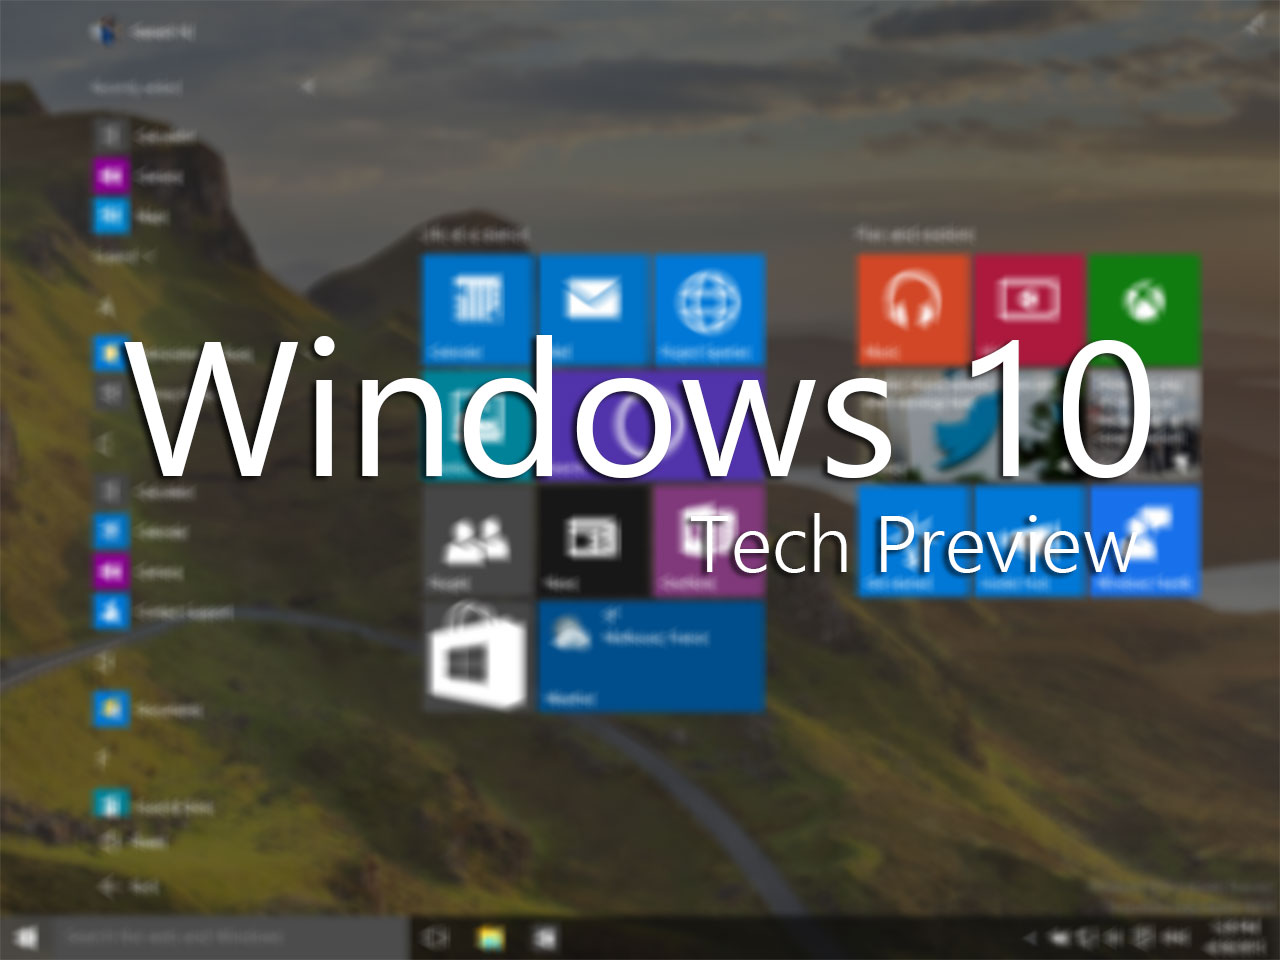 Windows 10 build 10166 includes Microsoft Wi-Fi app, bug fixes and 'fit-and-finish' tweaks